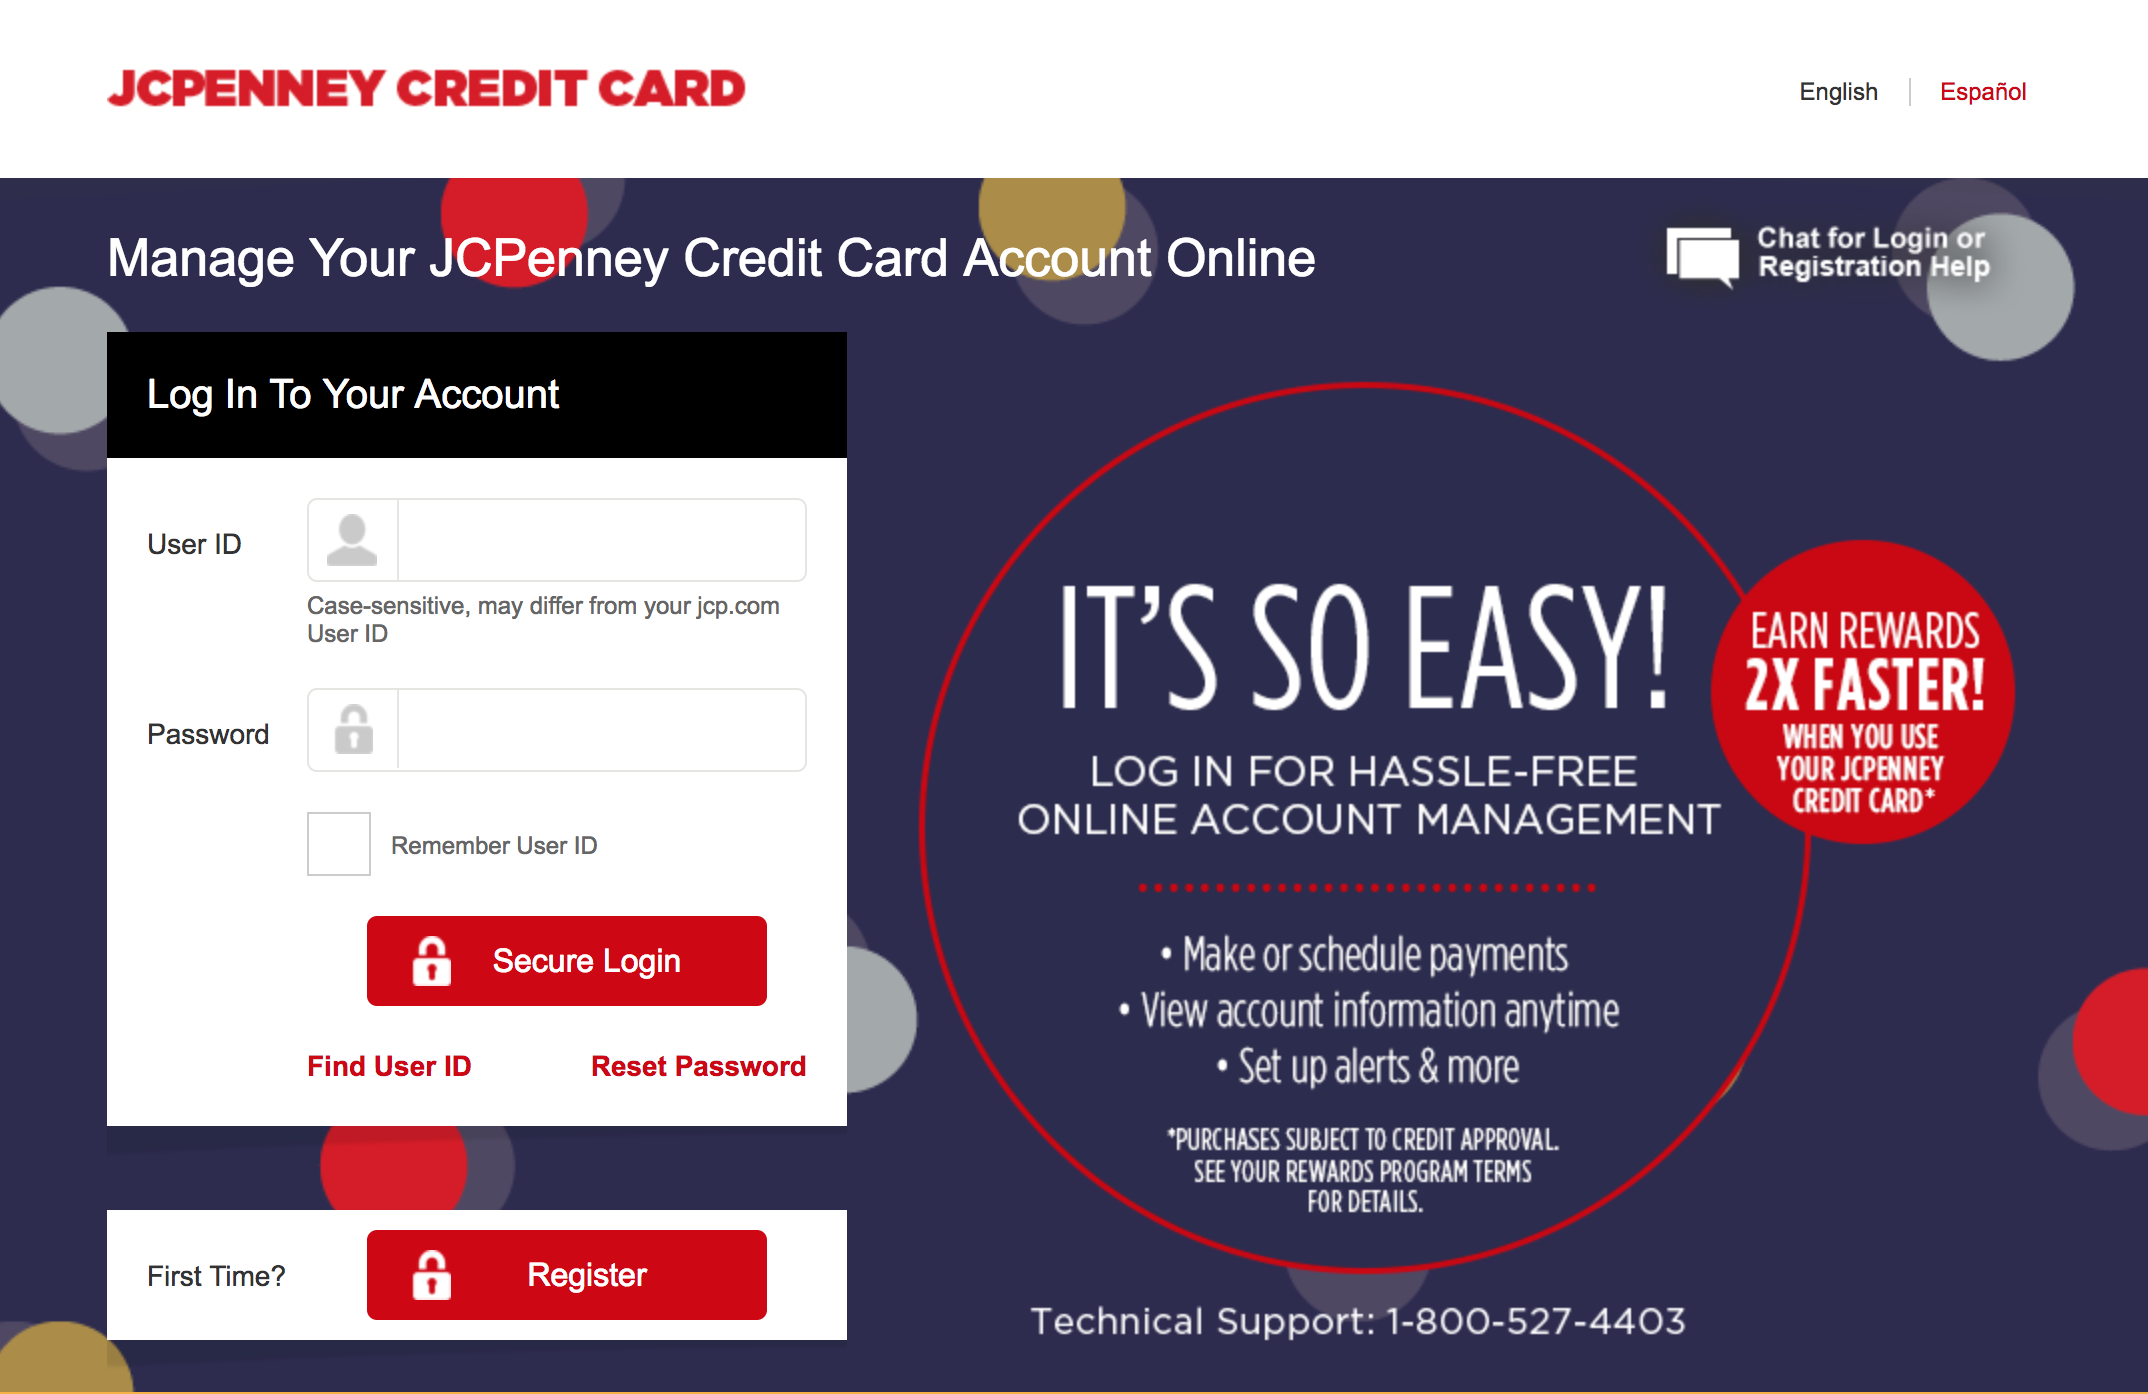 jcpenney credit card online account management - Jcpenney Rewards Credit Card